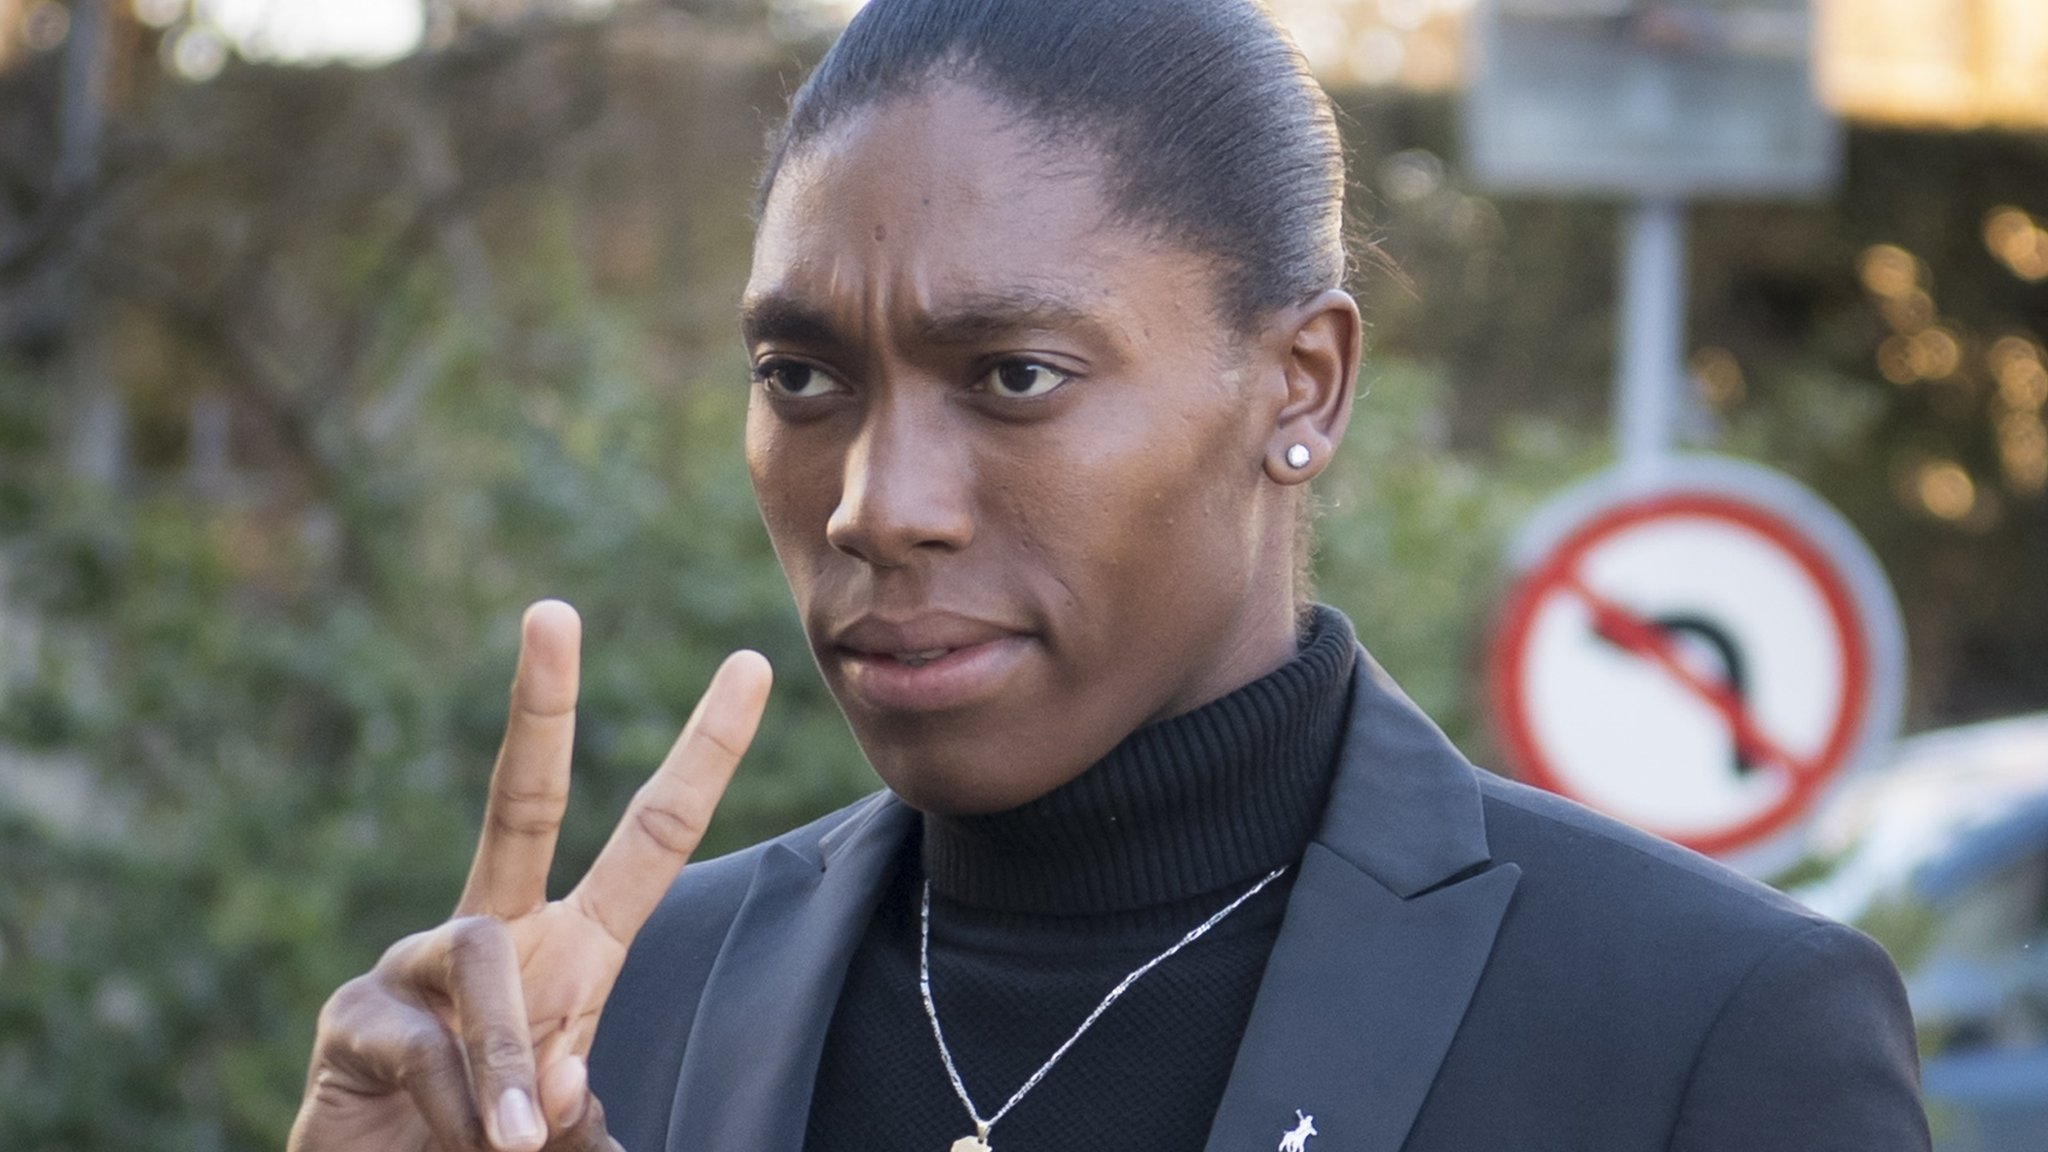 Semenya appeal against IAAF testosterone rule begins